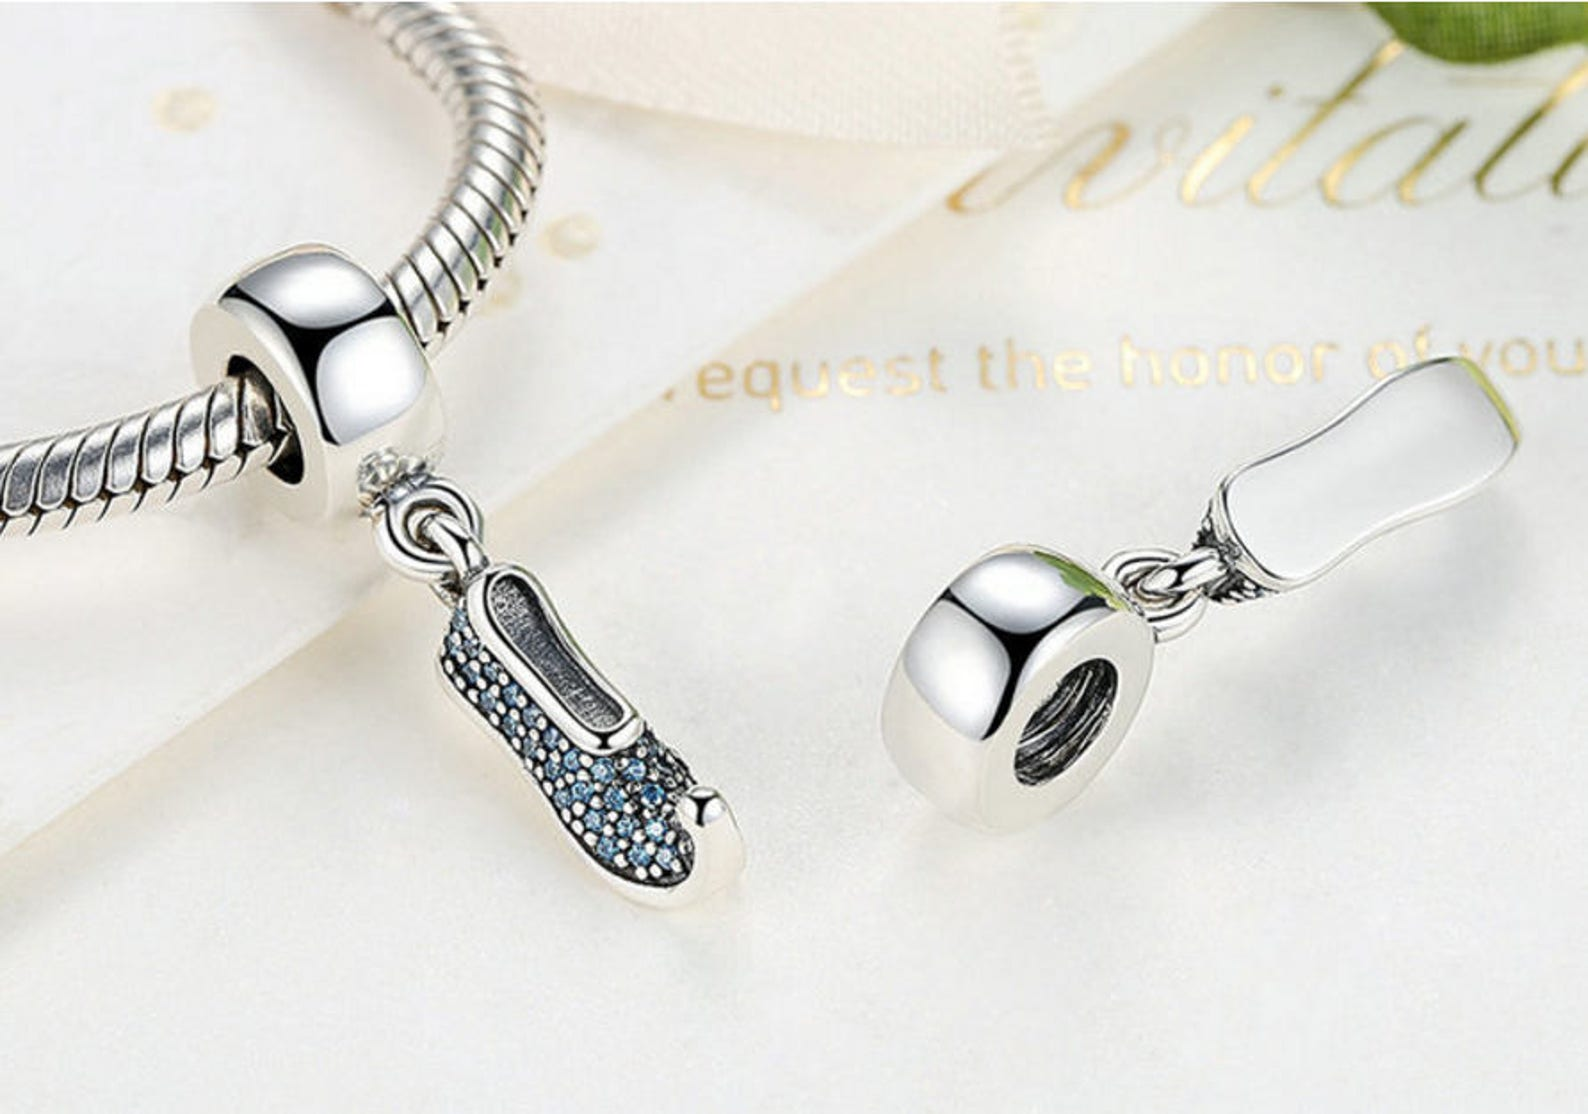 sterling 925 silver charm ballet shoes bead pendant fits pandora charm and european charm bracelet